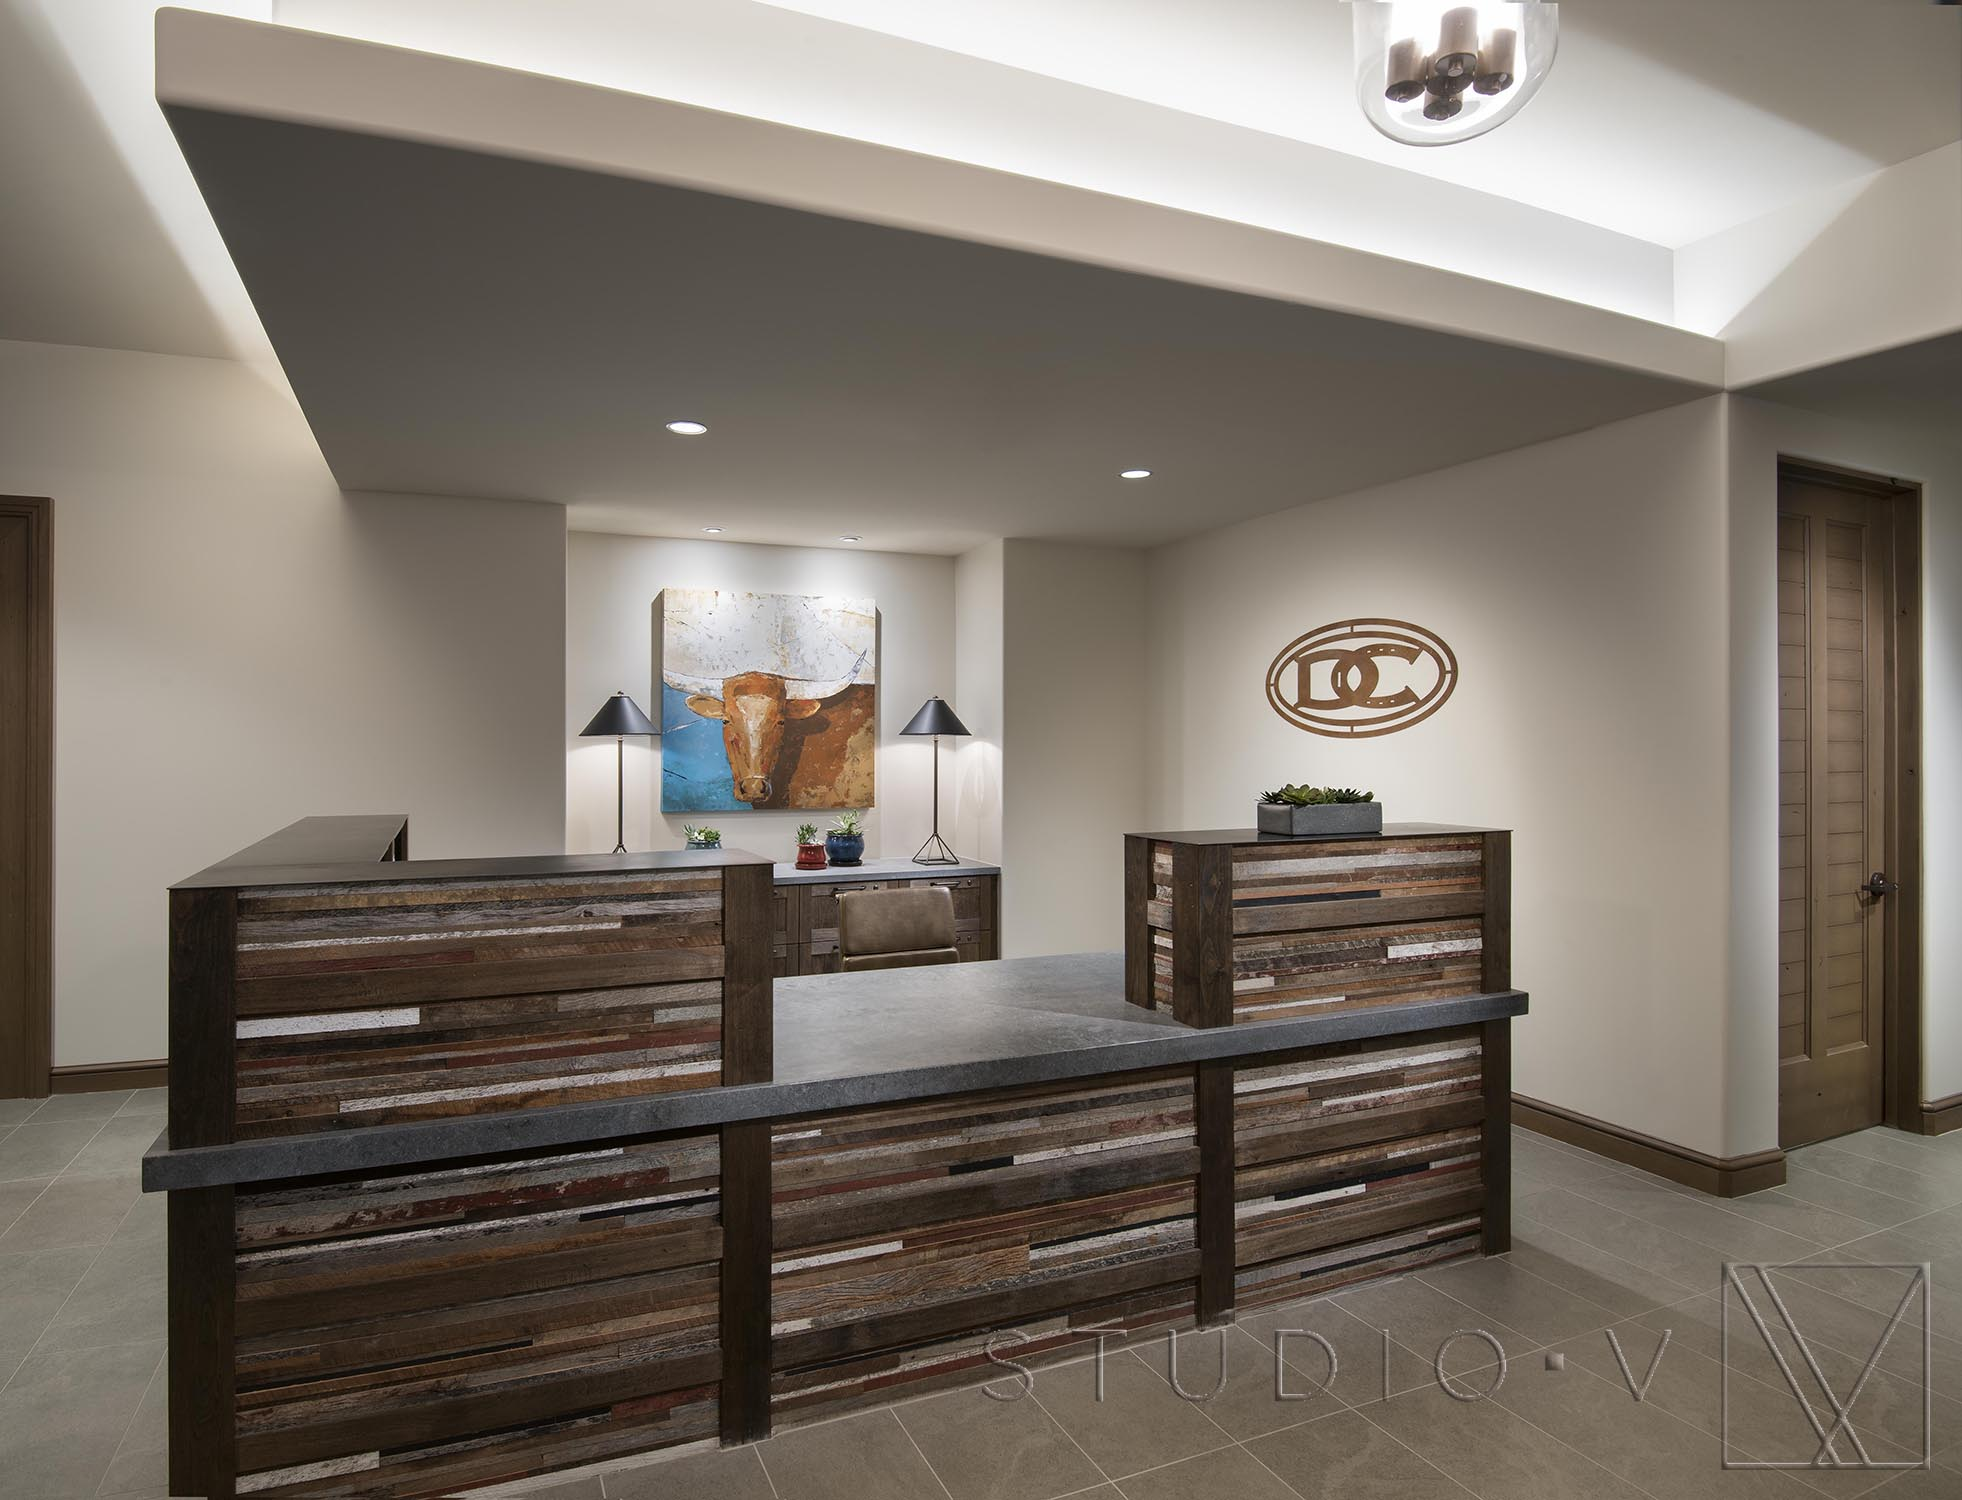 reception desk - Copy.jpg